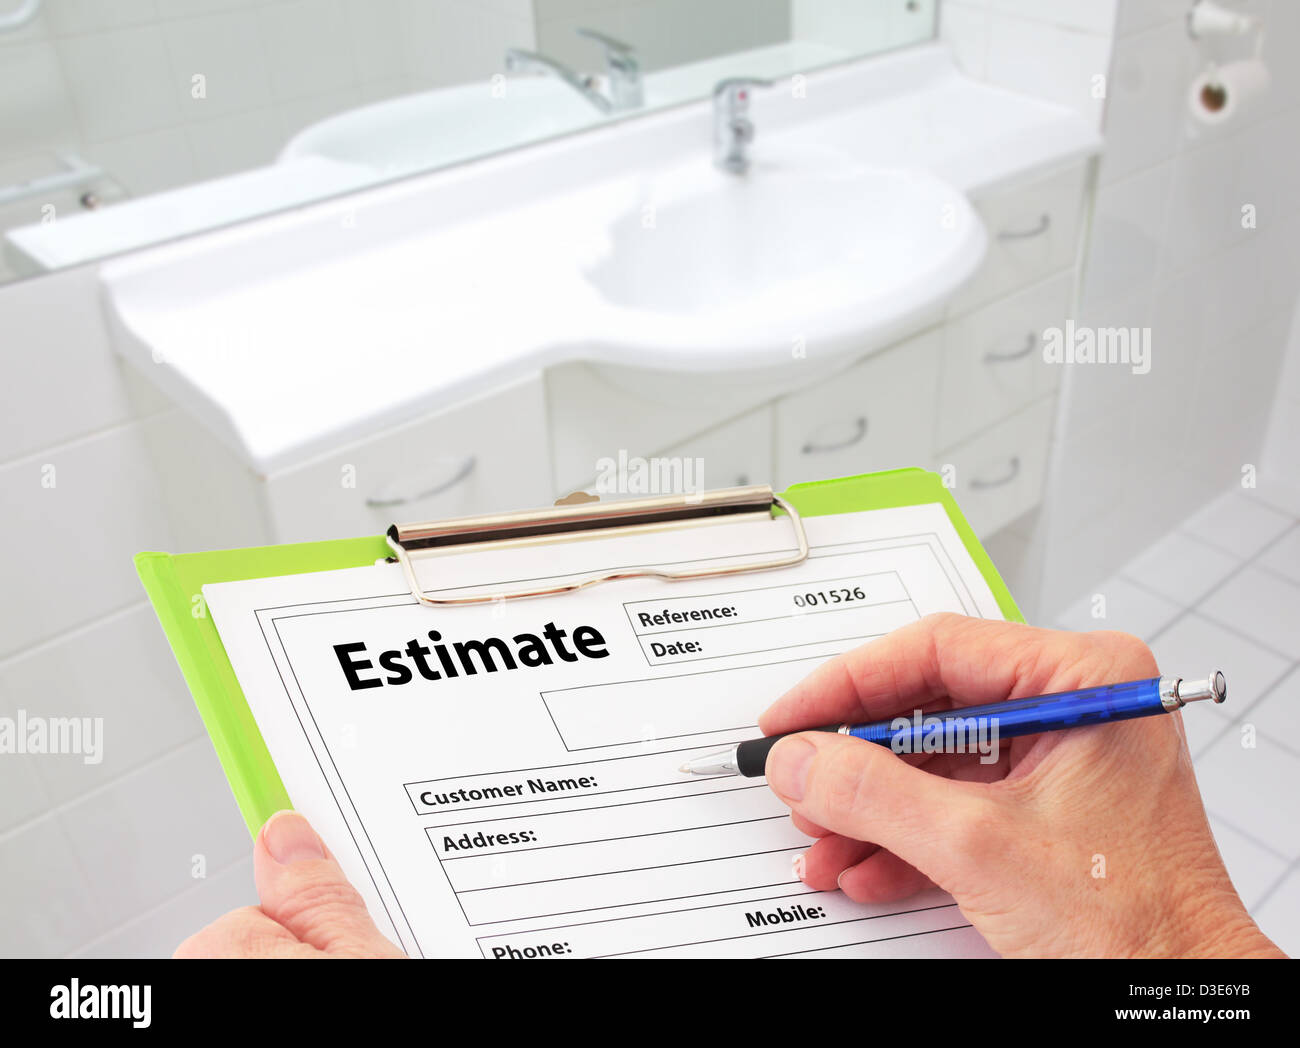 hand writing an estimate for bathroom renovation stock photo